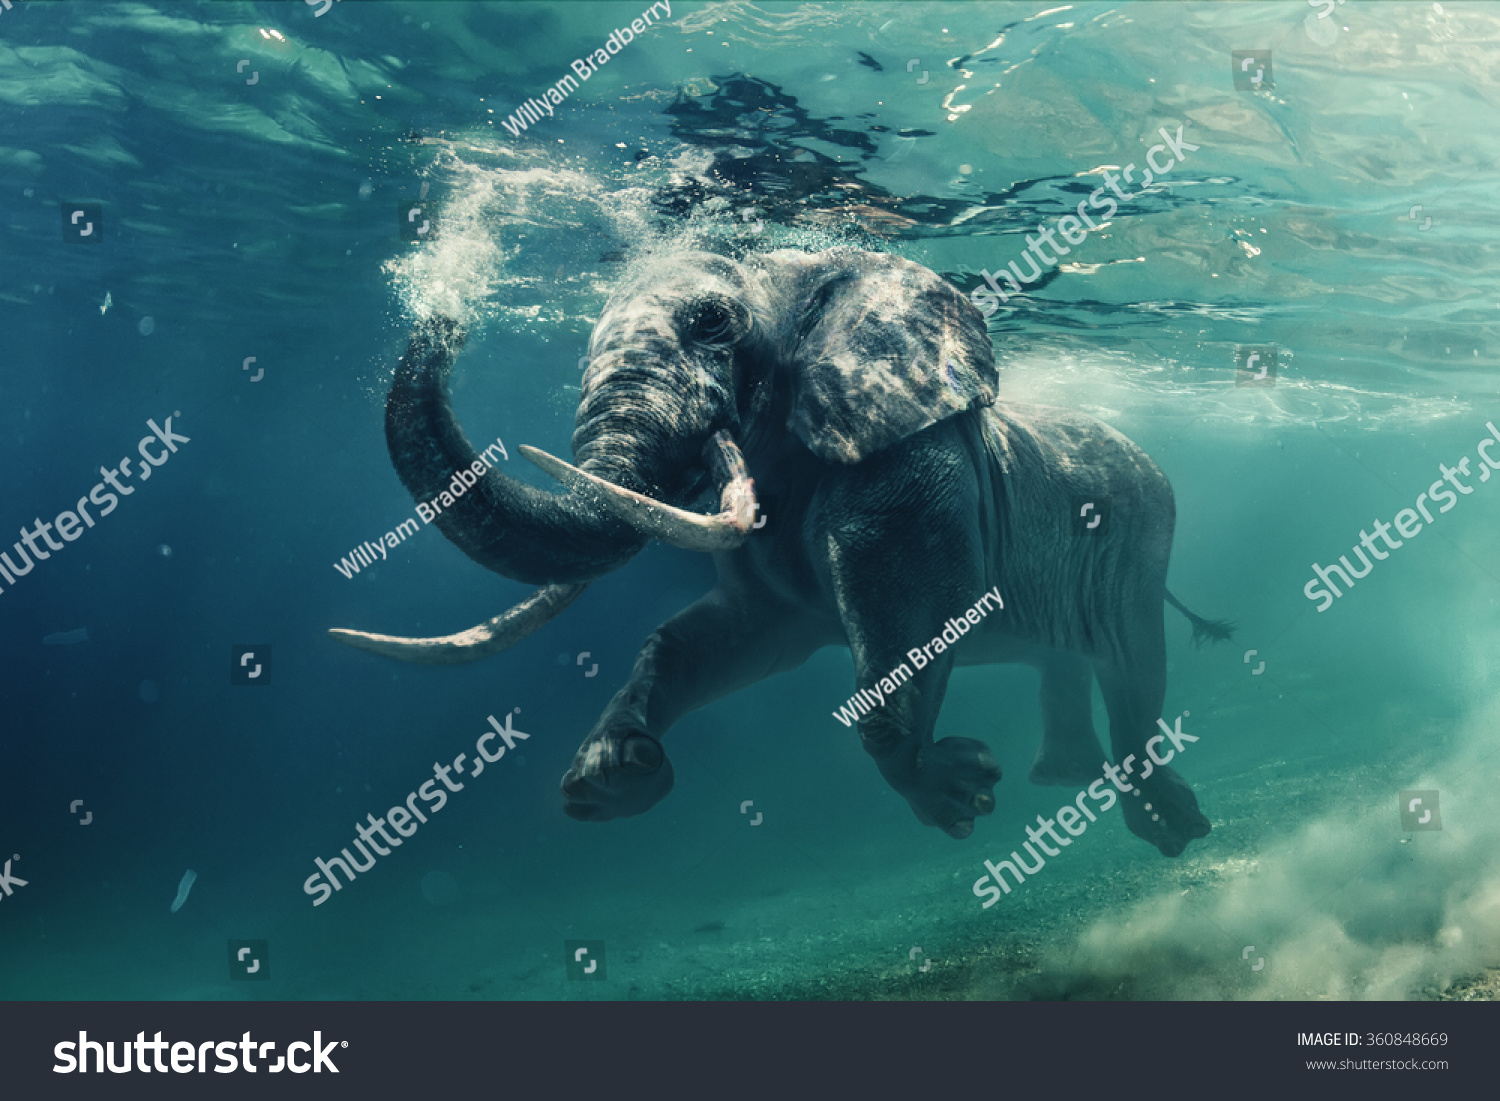 Swimming Elephant Underwater. African elephant in ocean with mirrors and ripples at water surface. #360848669